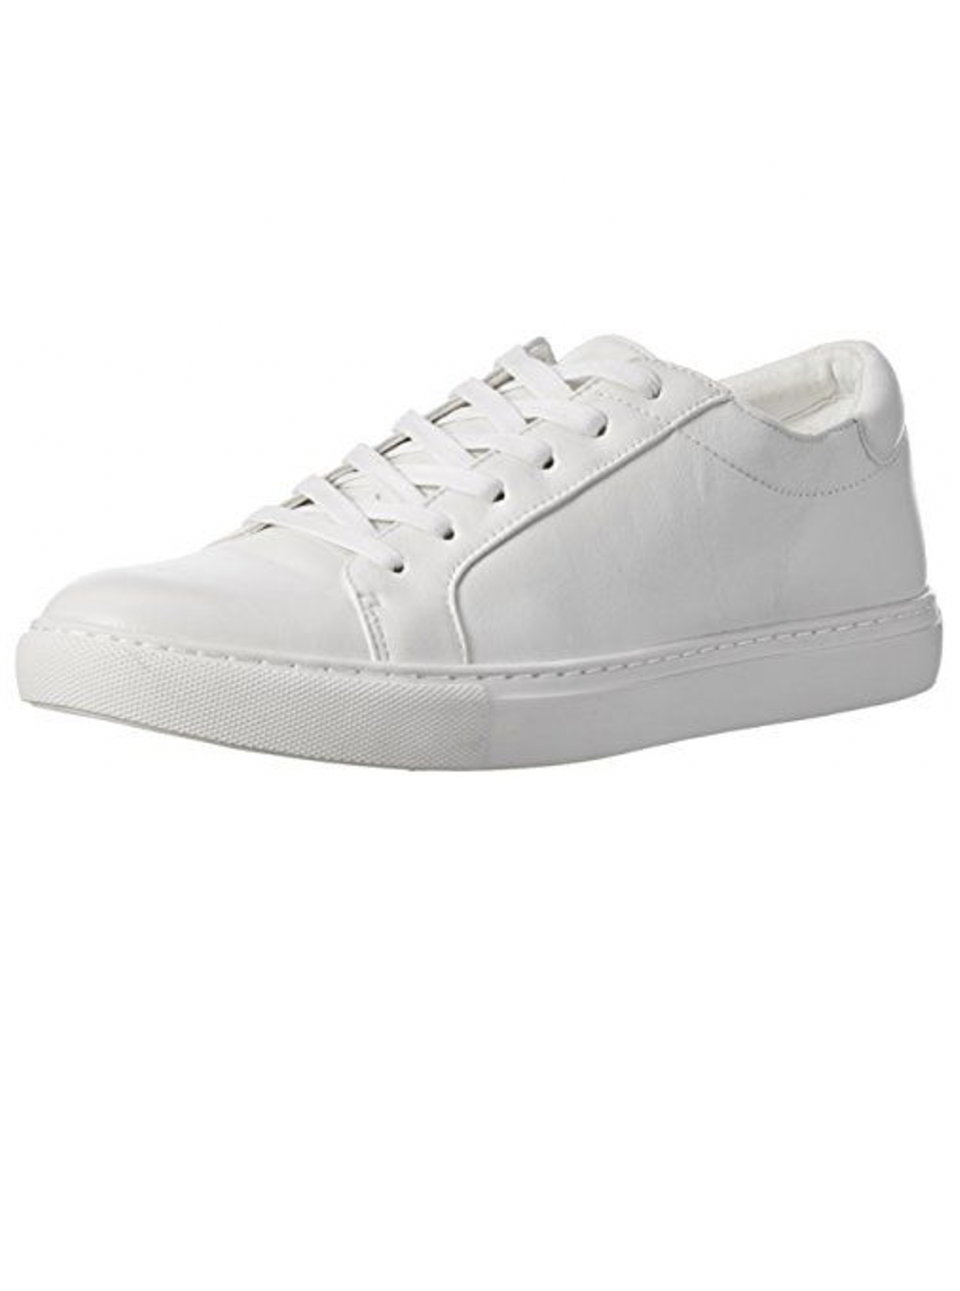 """<p><strong>Kenneth Cole New York</strong></p><p>amazon.com</p><p><strong>$58.00</strong></p><p><a href=""""https://www.amazon.com/dp/B00O4CCFQM?tag=syn-yahoo-20&ascsubtag=%5Bartid%7C10065.g.36801569%5Bsrc%7Cyahoo-us"""" rel=""""nofollow noopener"""" target=""""_blank"""" data-ylk=""""slk:Shop Now"""" class=""""link rapid-noclick-resp"""">Shop Now</a></p><p>Is there actually such a thing as too many white leather sneakers? I think not.</p>"""